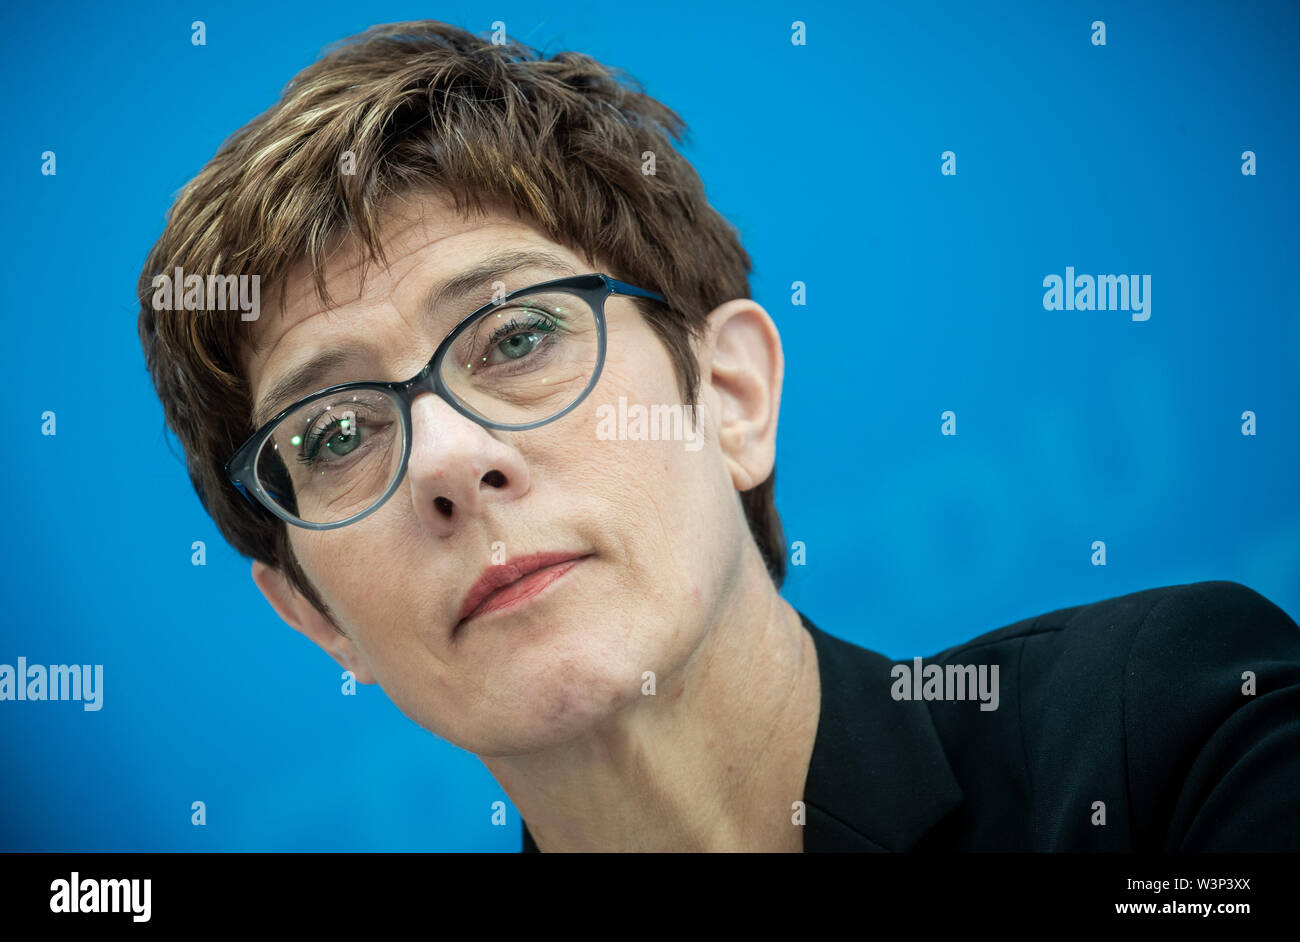 Berlin, Germany. 03rd June, 2019. Annegret Kramp-Karrenbauer, federal chairman of the CDU, will speak at a press conference after the two-day CDU board meeting. Kramp-Karrenbauer surprisingly becomes new Defense Minister. Credit: Michael Kappeler/dpa/Alamy Live News - Stock Image